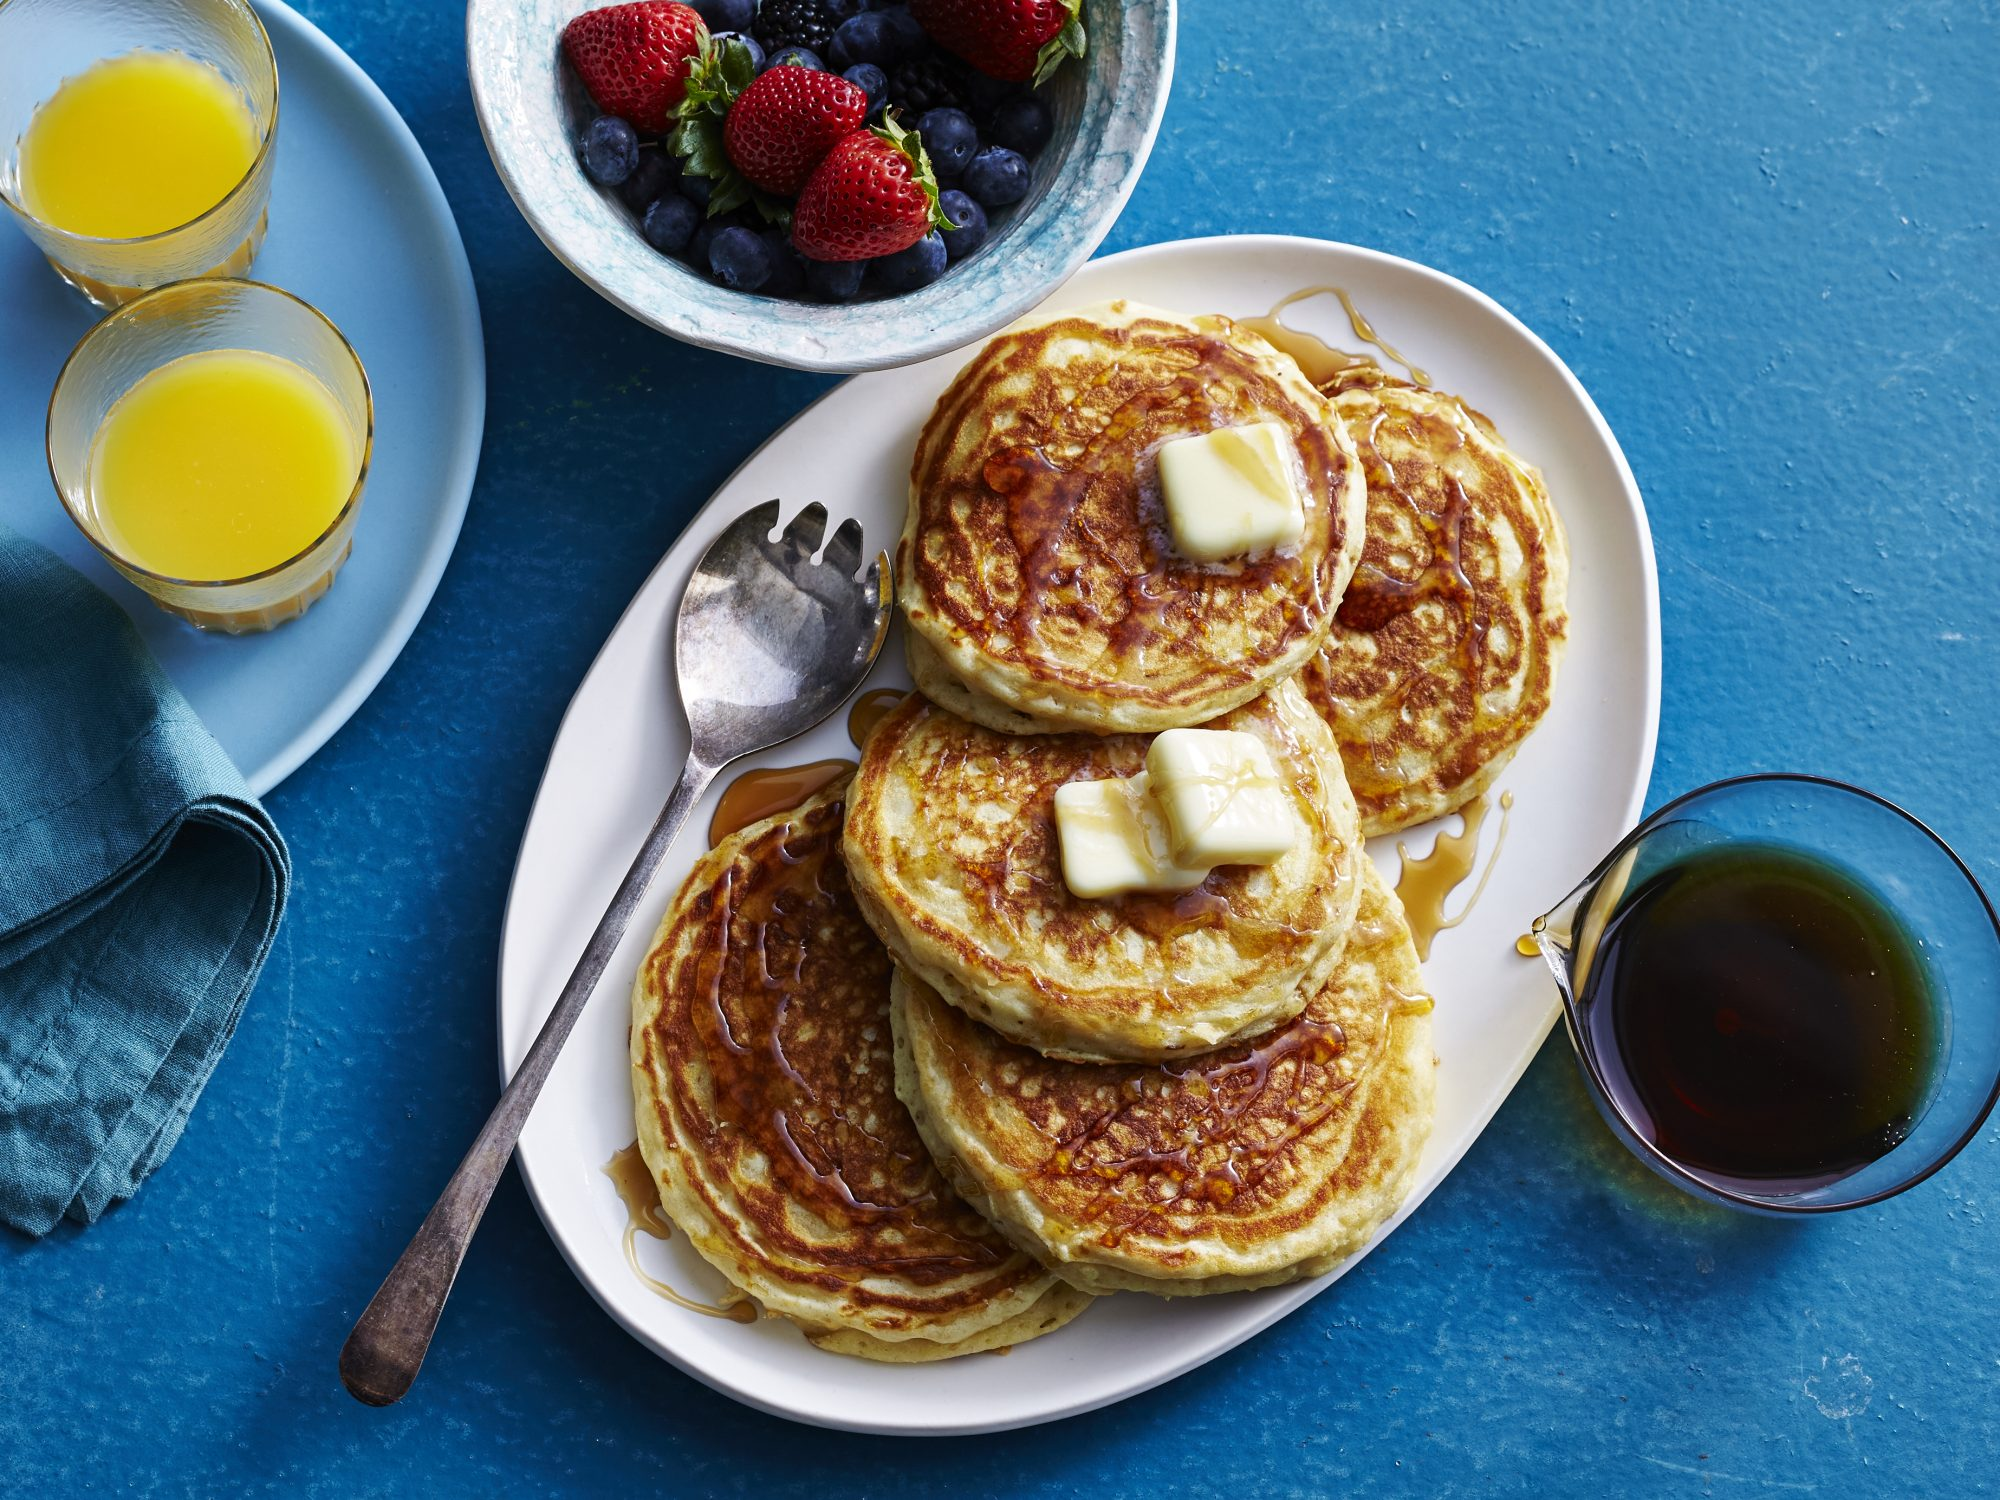 mr-basic-buttermilk-pancakes-image